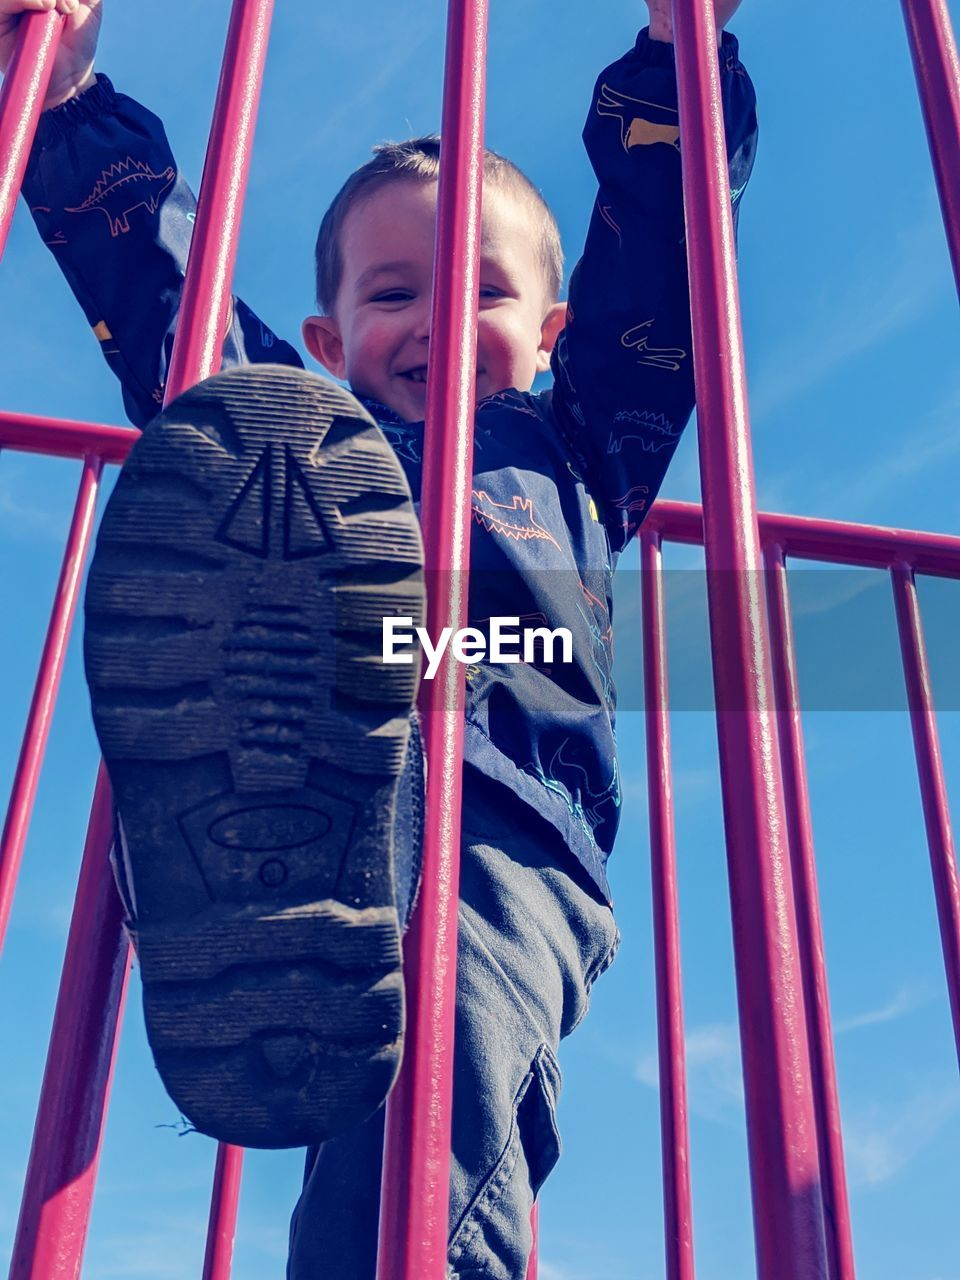 LOW ANGLE VIEW OF BOY ON SLIDE